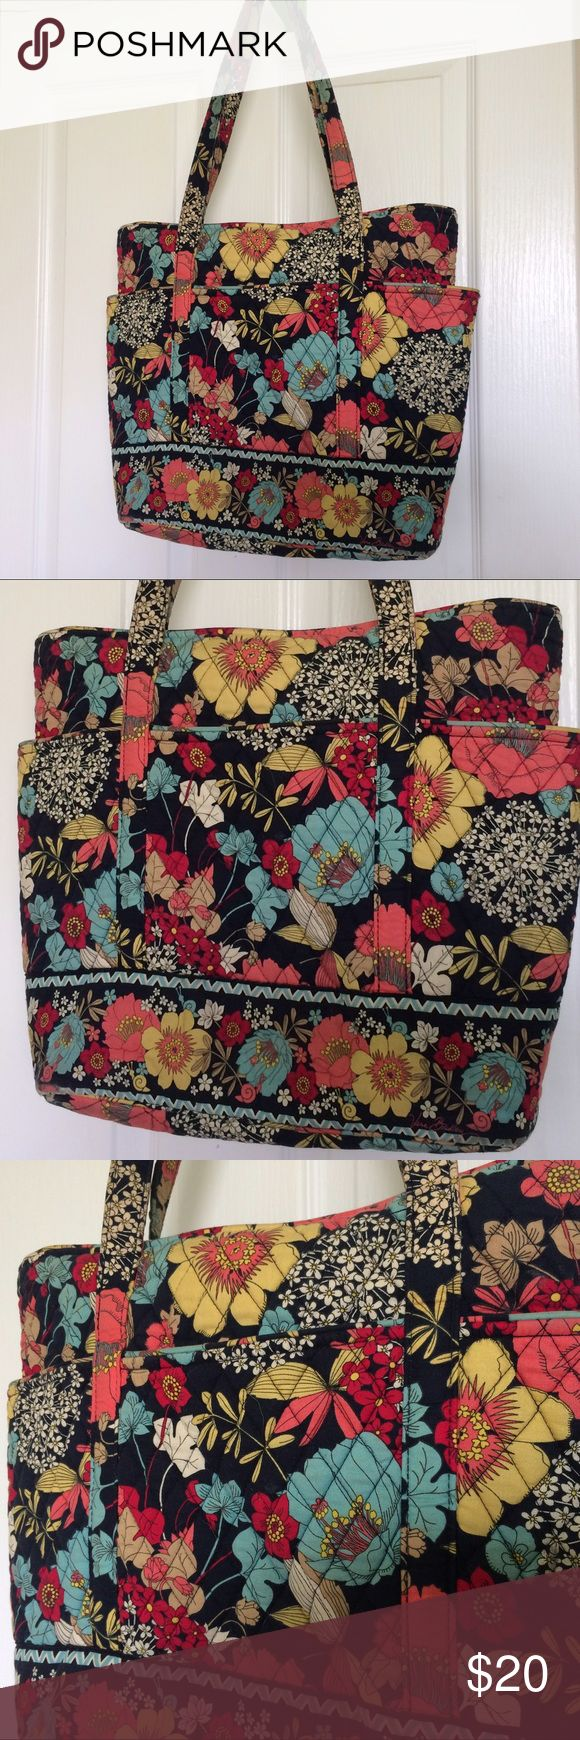 "Vera Bradley Signature quilted cotton tote.  Used Beautiful floral print.  14""H x 17""W x 5""D.  Handle drop 11"".  Zippered top closure.  6 slip pockets outside, 3 slip pockets inside.   Good condition. Slightly worn on bottom (see last two pictures).  Machine wash, line dry. Vera Bradley Bags Totes"